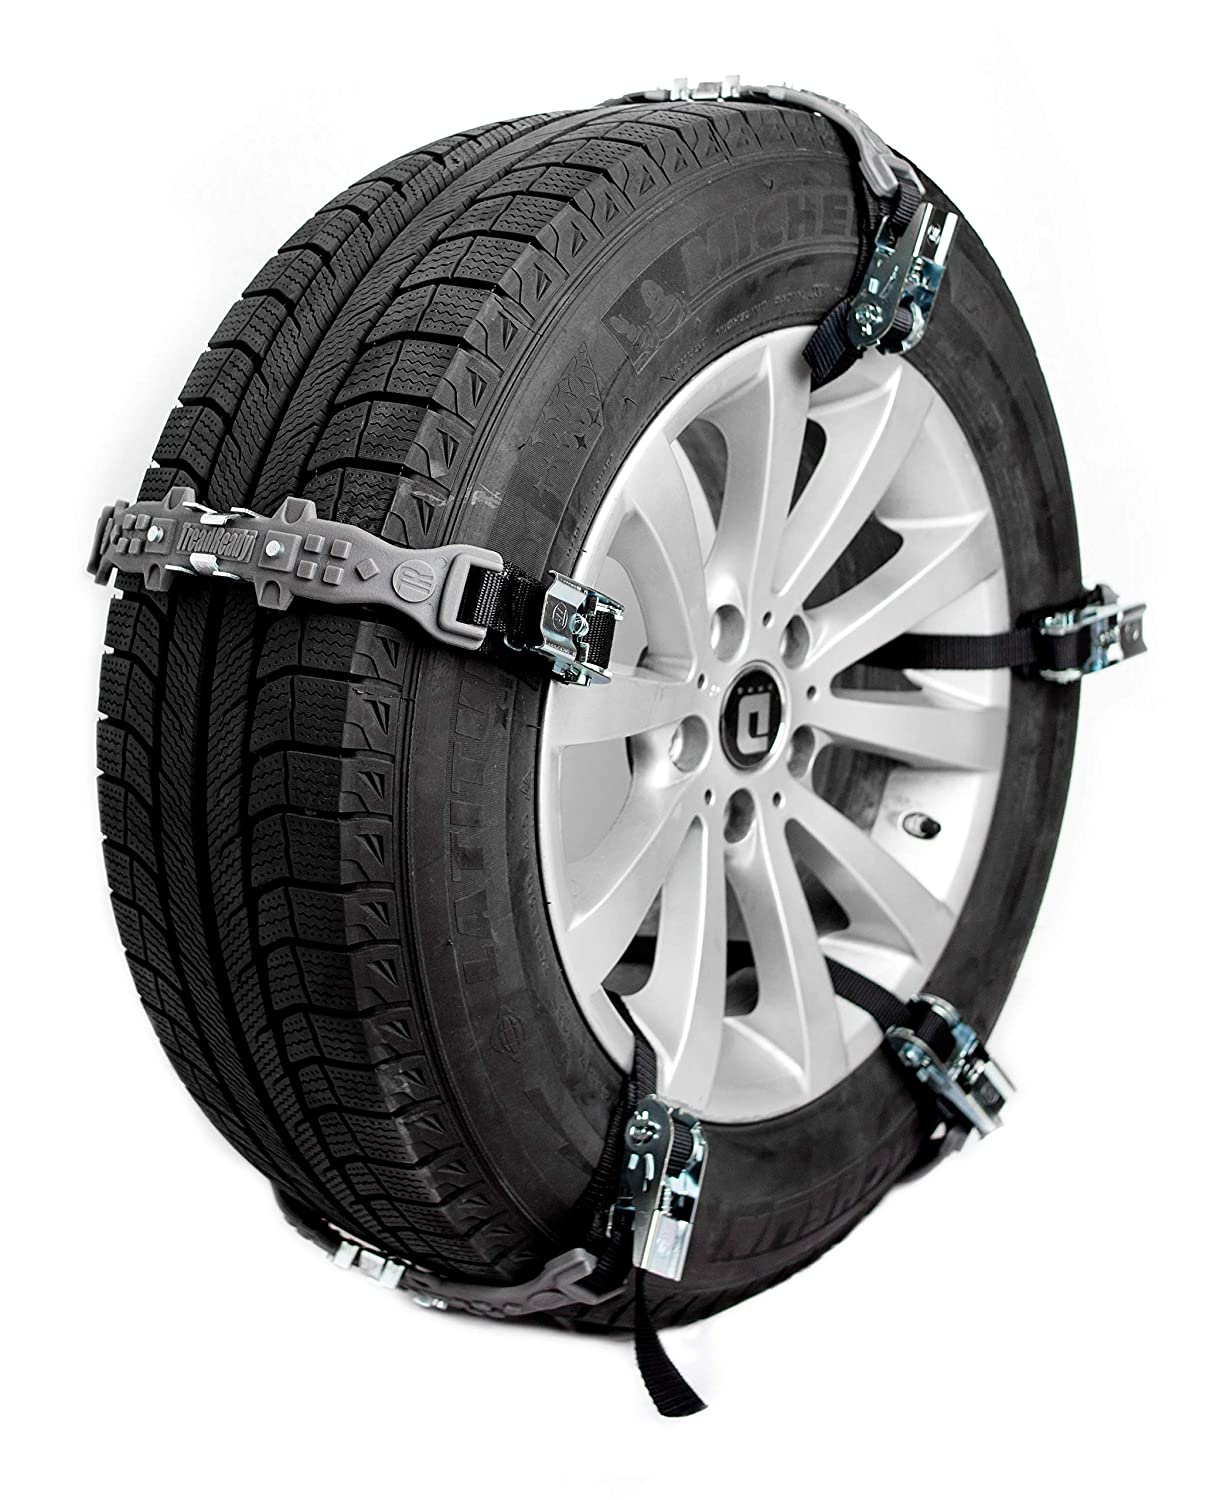 TreadReady Adirondack Strap Easier Than Snow Chains! AS10PG1 Emergency Traction Device for Snow Sand and MUD Pink